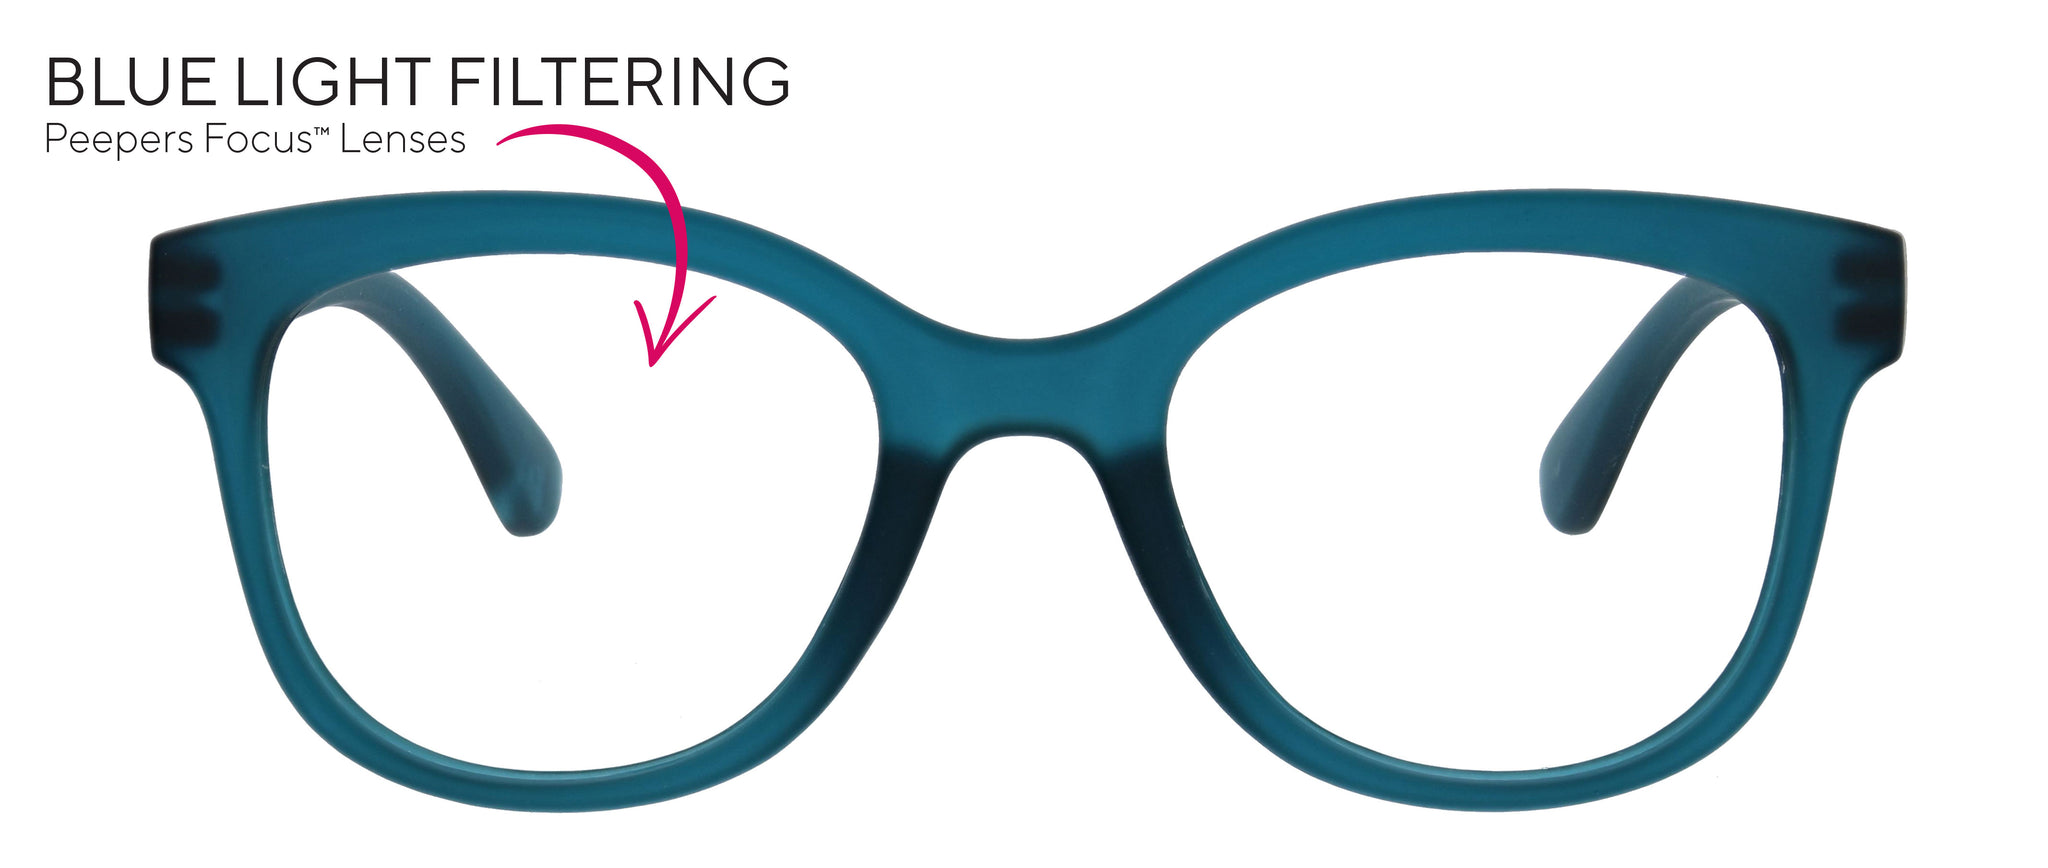 Peepers Brocade blue light reading glasses with Focus™ lenses